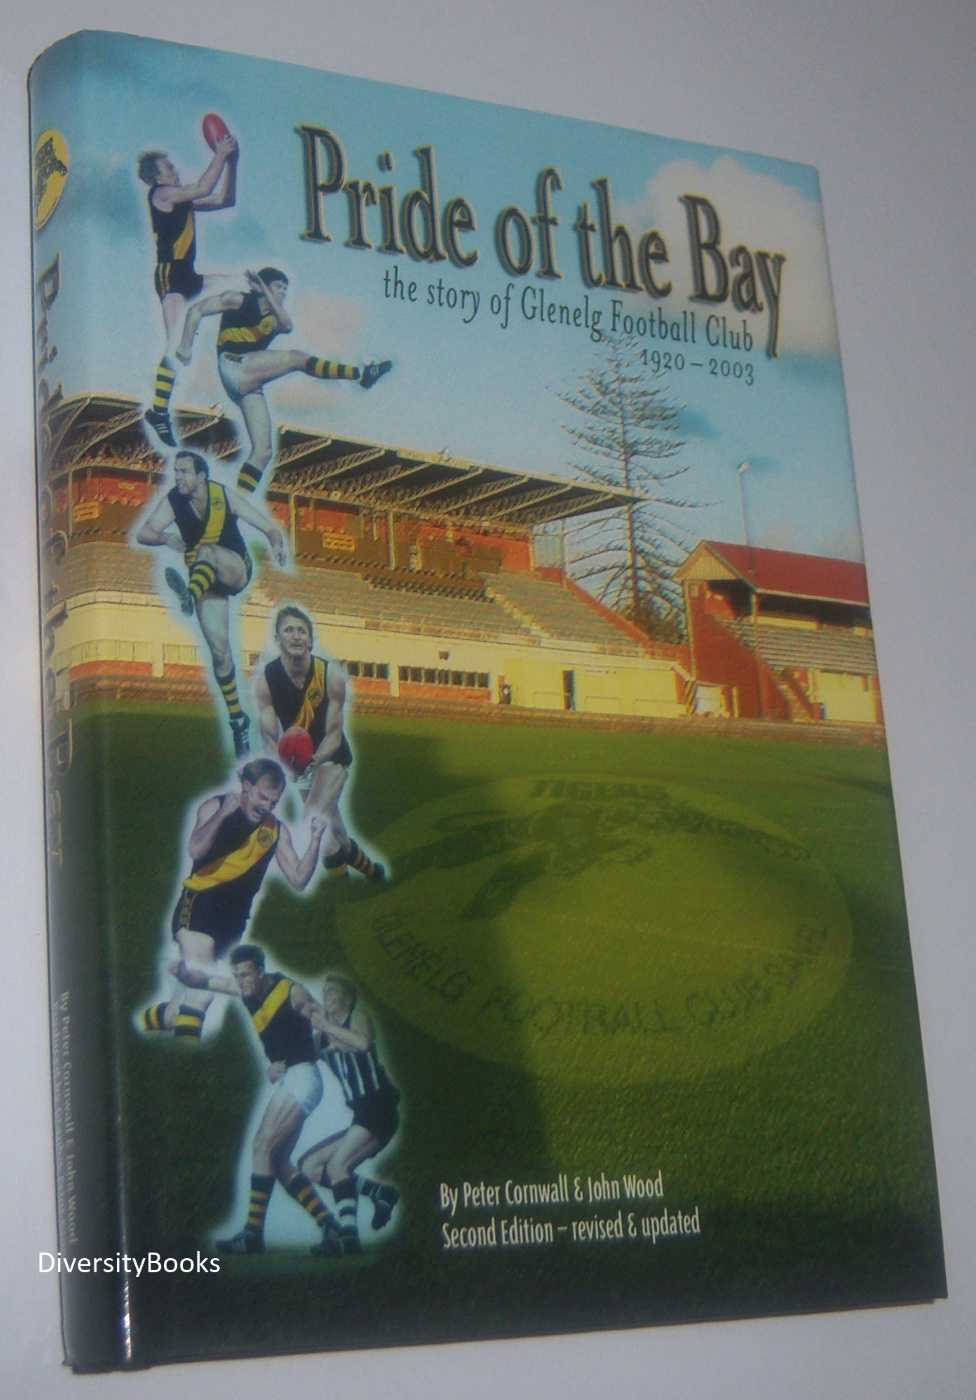 Image for PRIDE OF THE BAY: The Story of the Glenelg Football Club 1920-2003